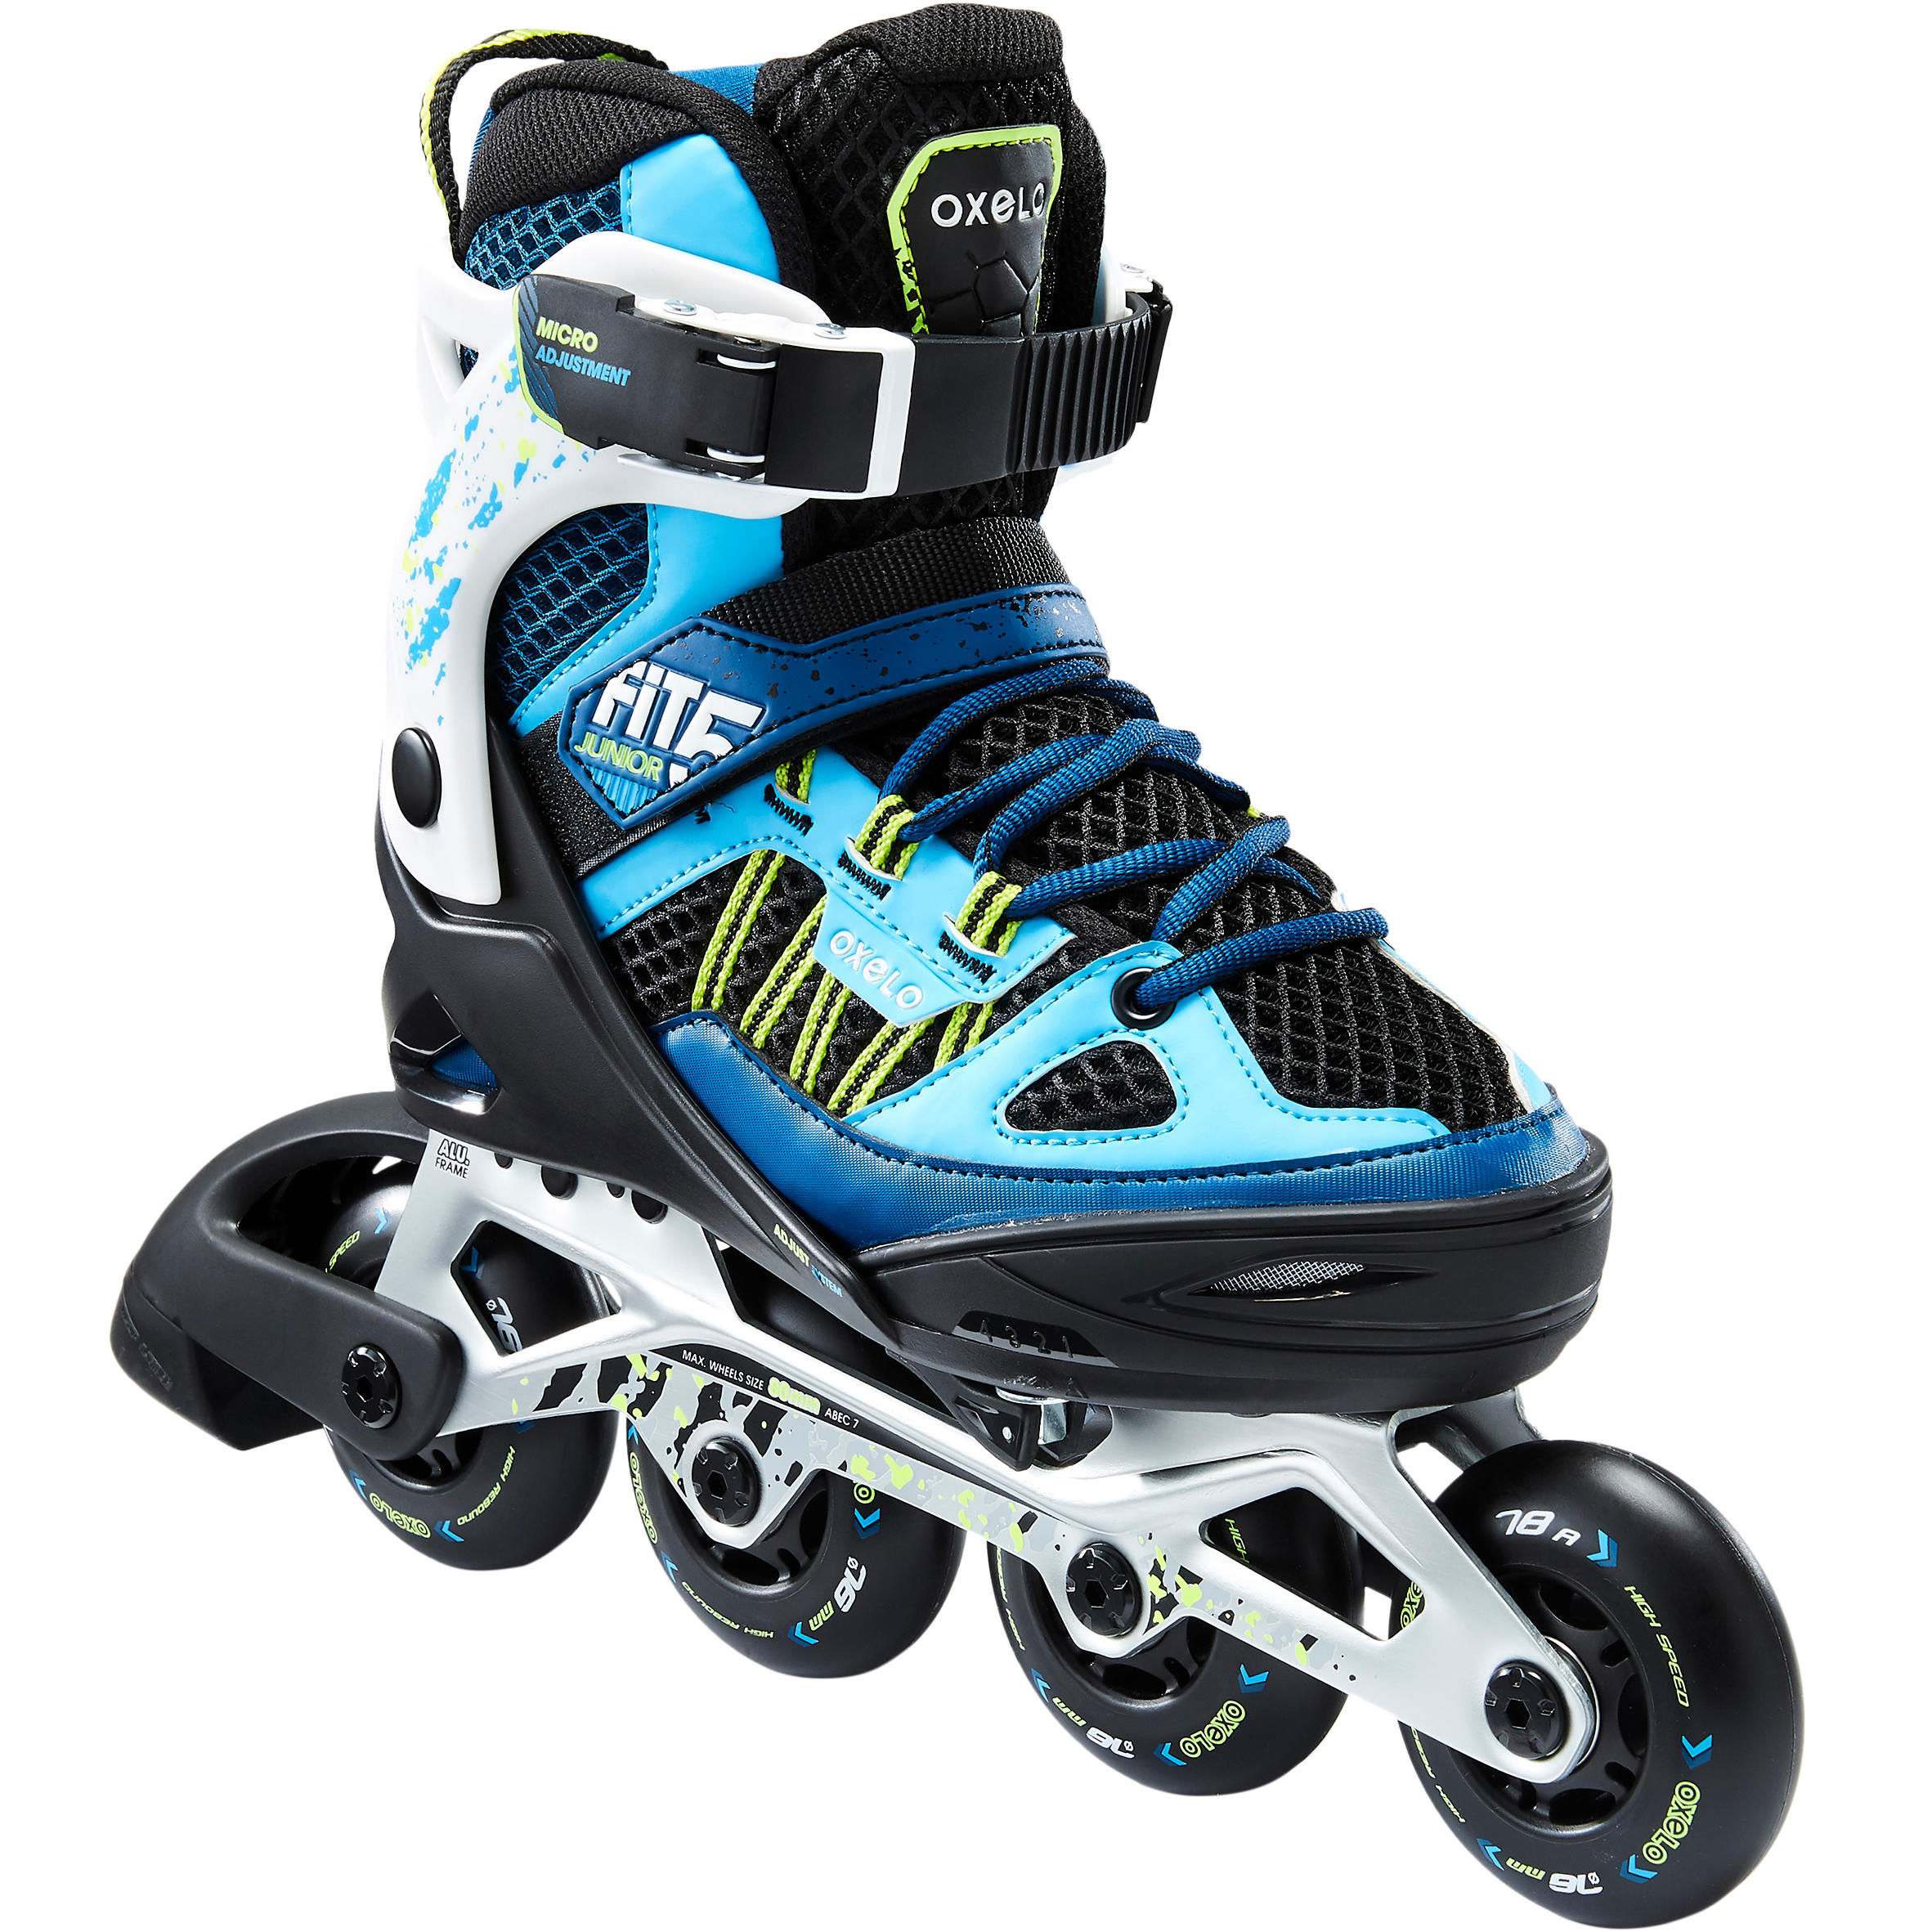 skating shoes for 8 year old